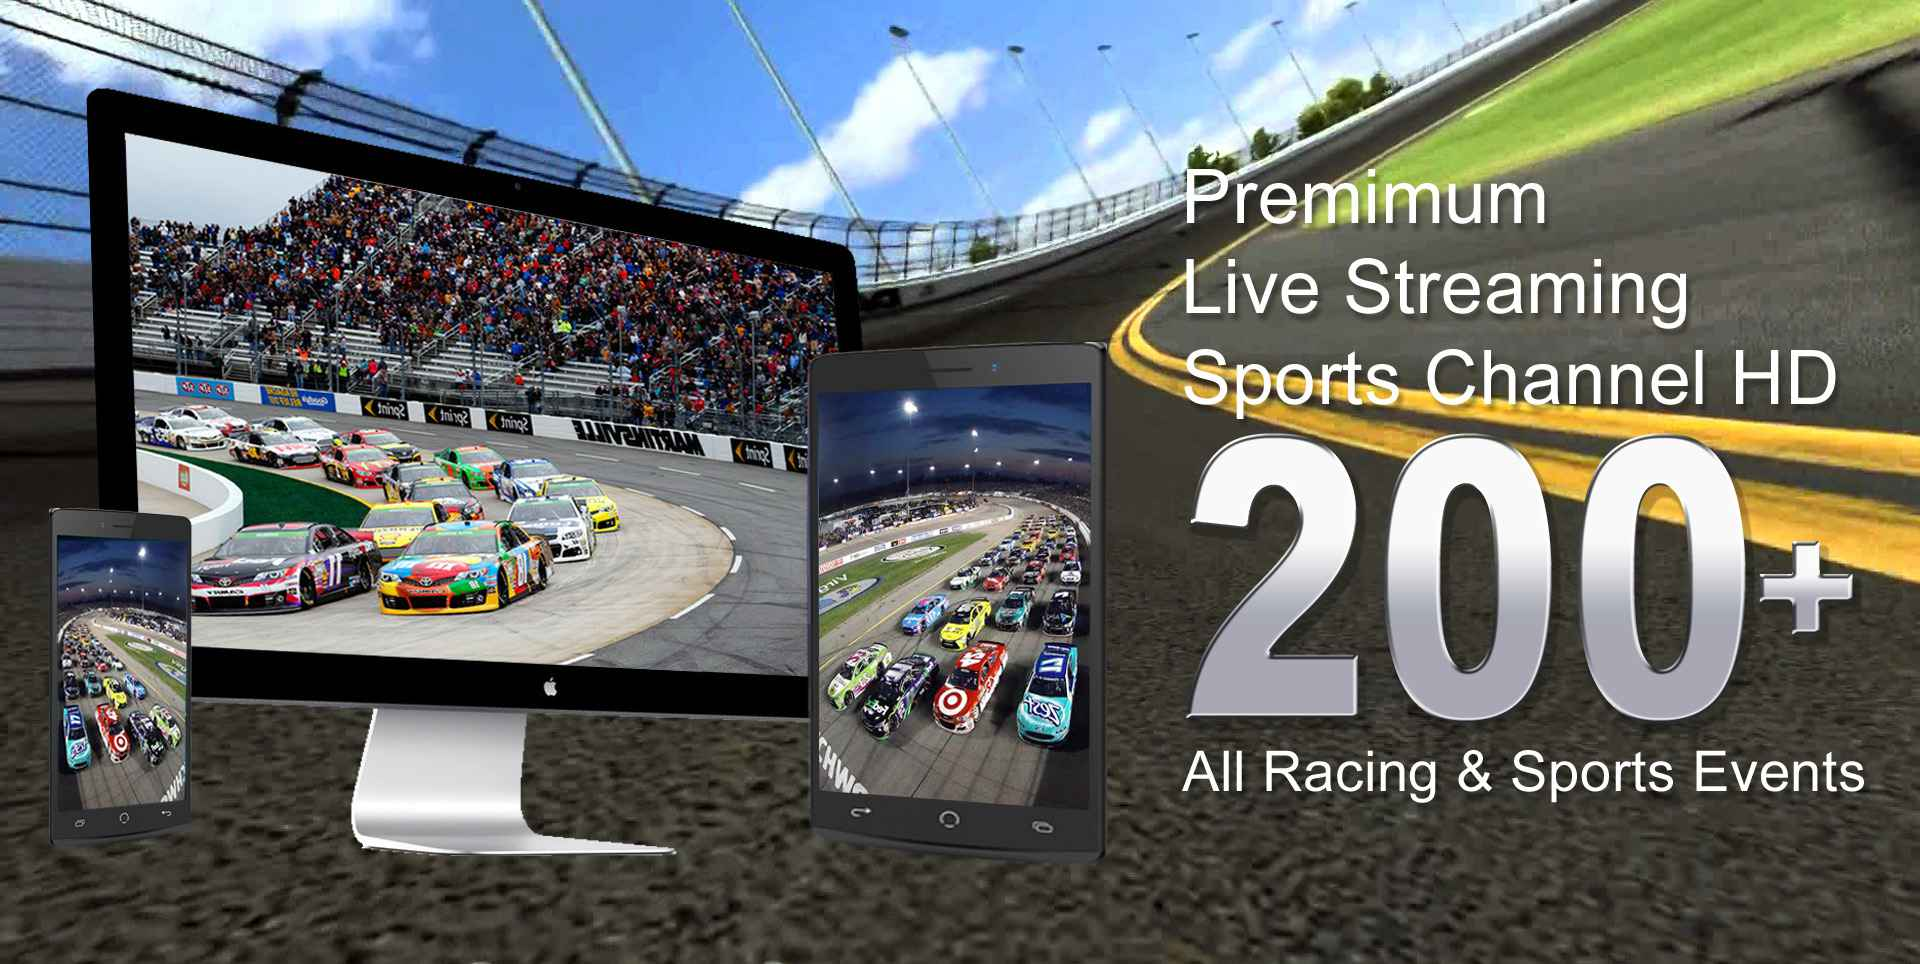 Watch Nascar Racing At Kentucky Speedway